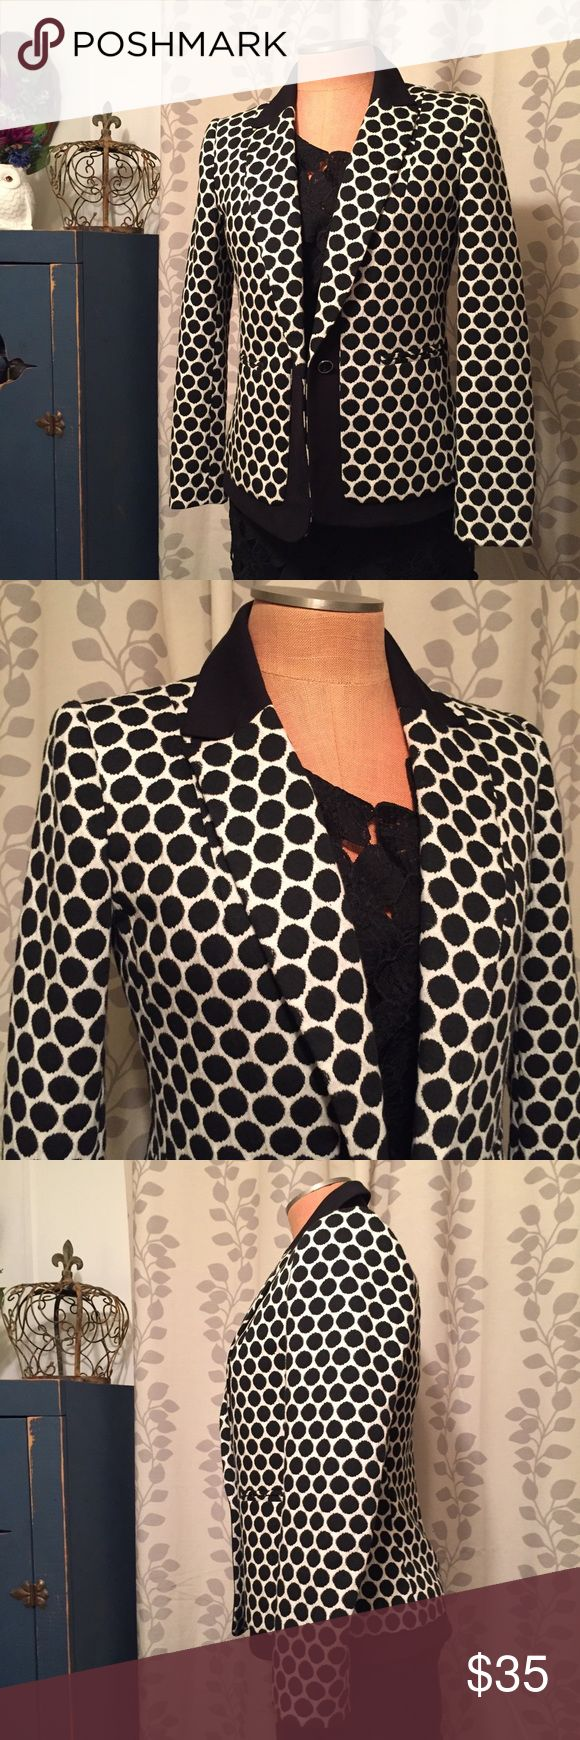 Anthropologie blazer Nice polka dot blazer by Leifnotes, a brand carried by Anthropologie. Single button closure and heavier type soft knit fabric. Labeled a 6 and in great condition! Anthropologie Jackets & Coats Blazers